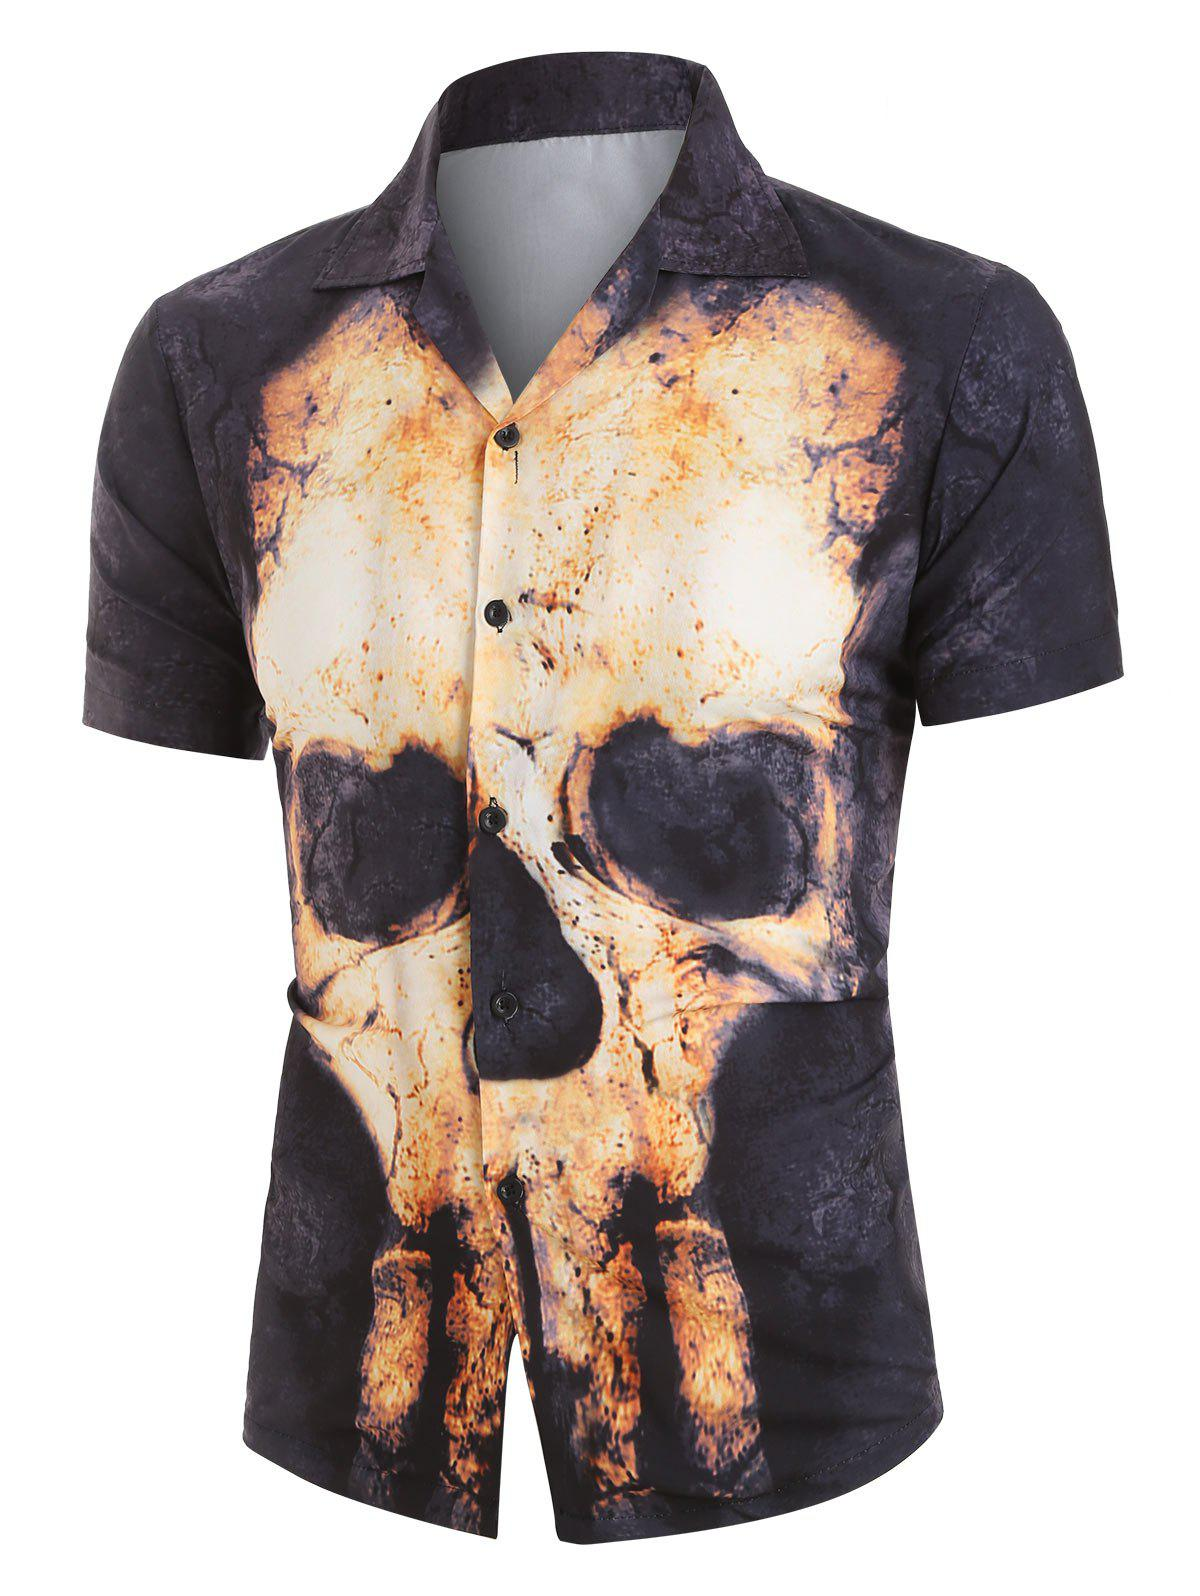 Chic Skull Print Button Up Short Sleeve Shirt